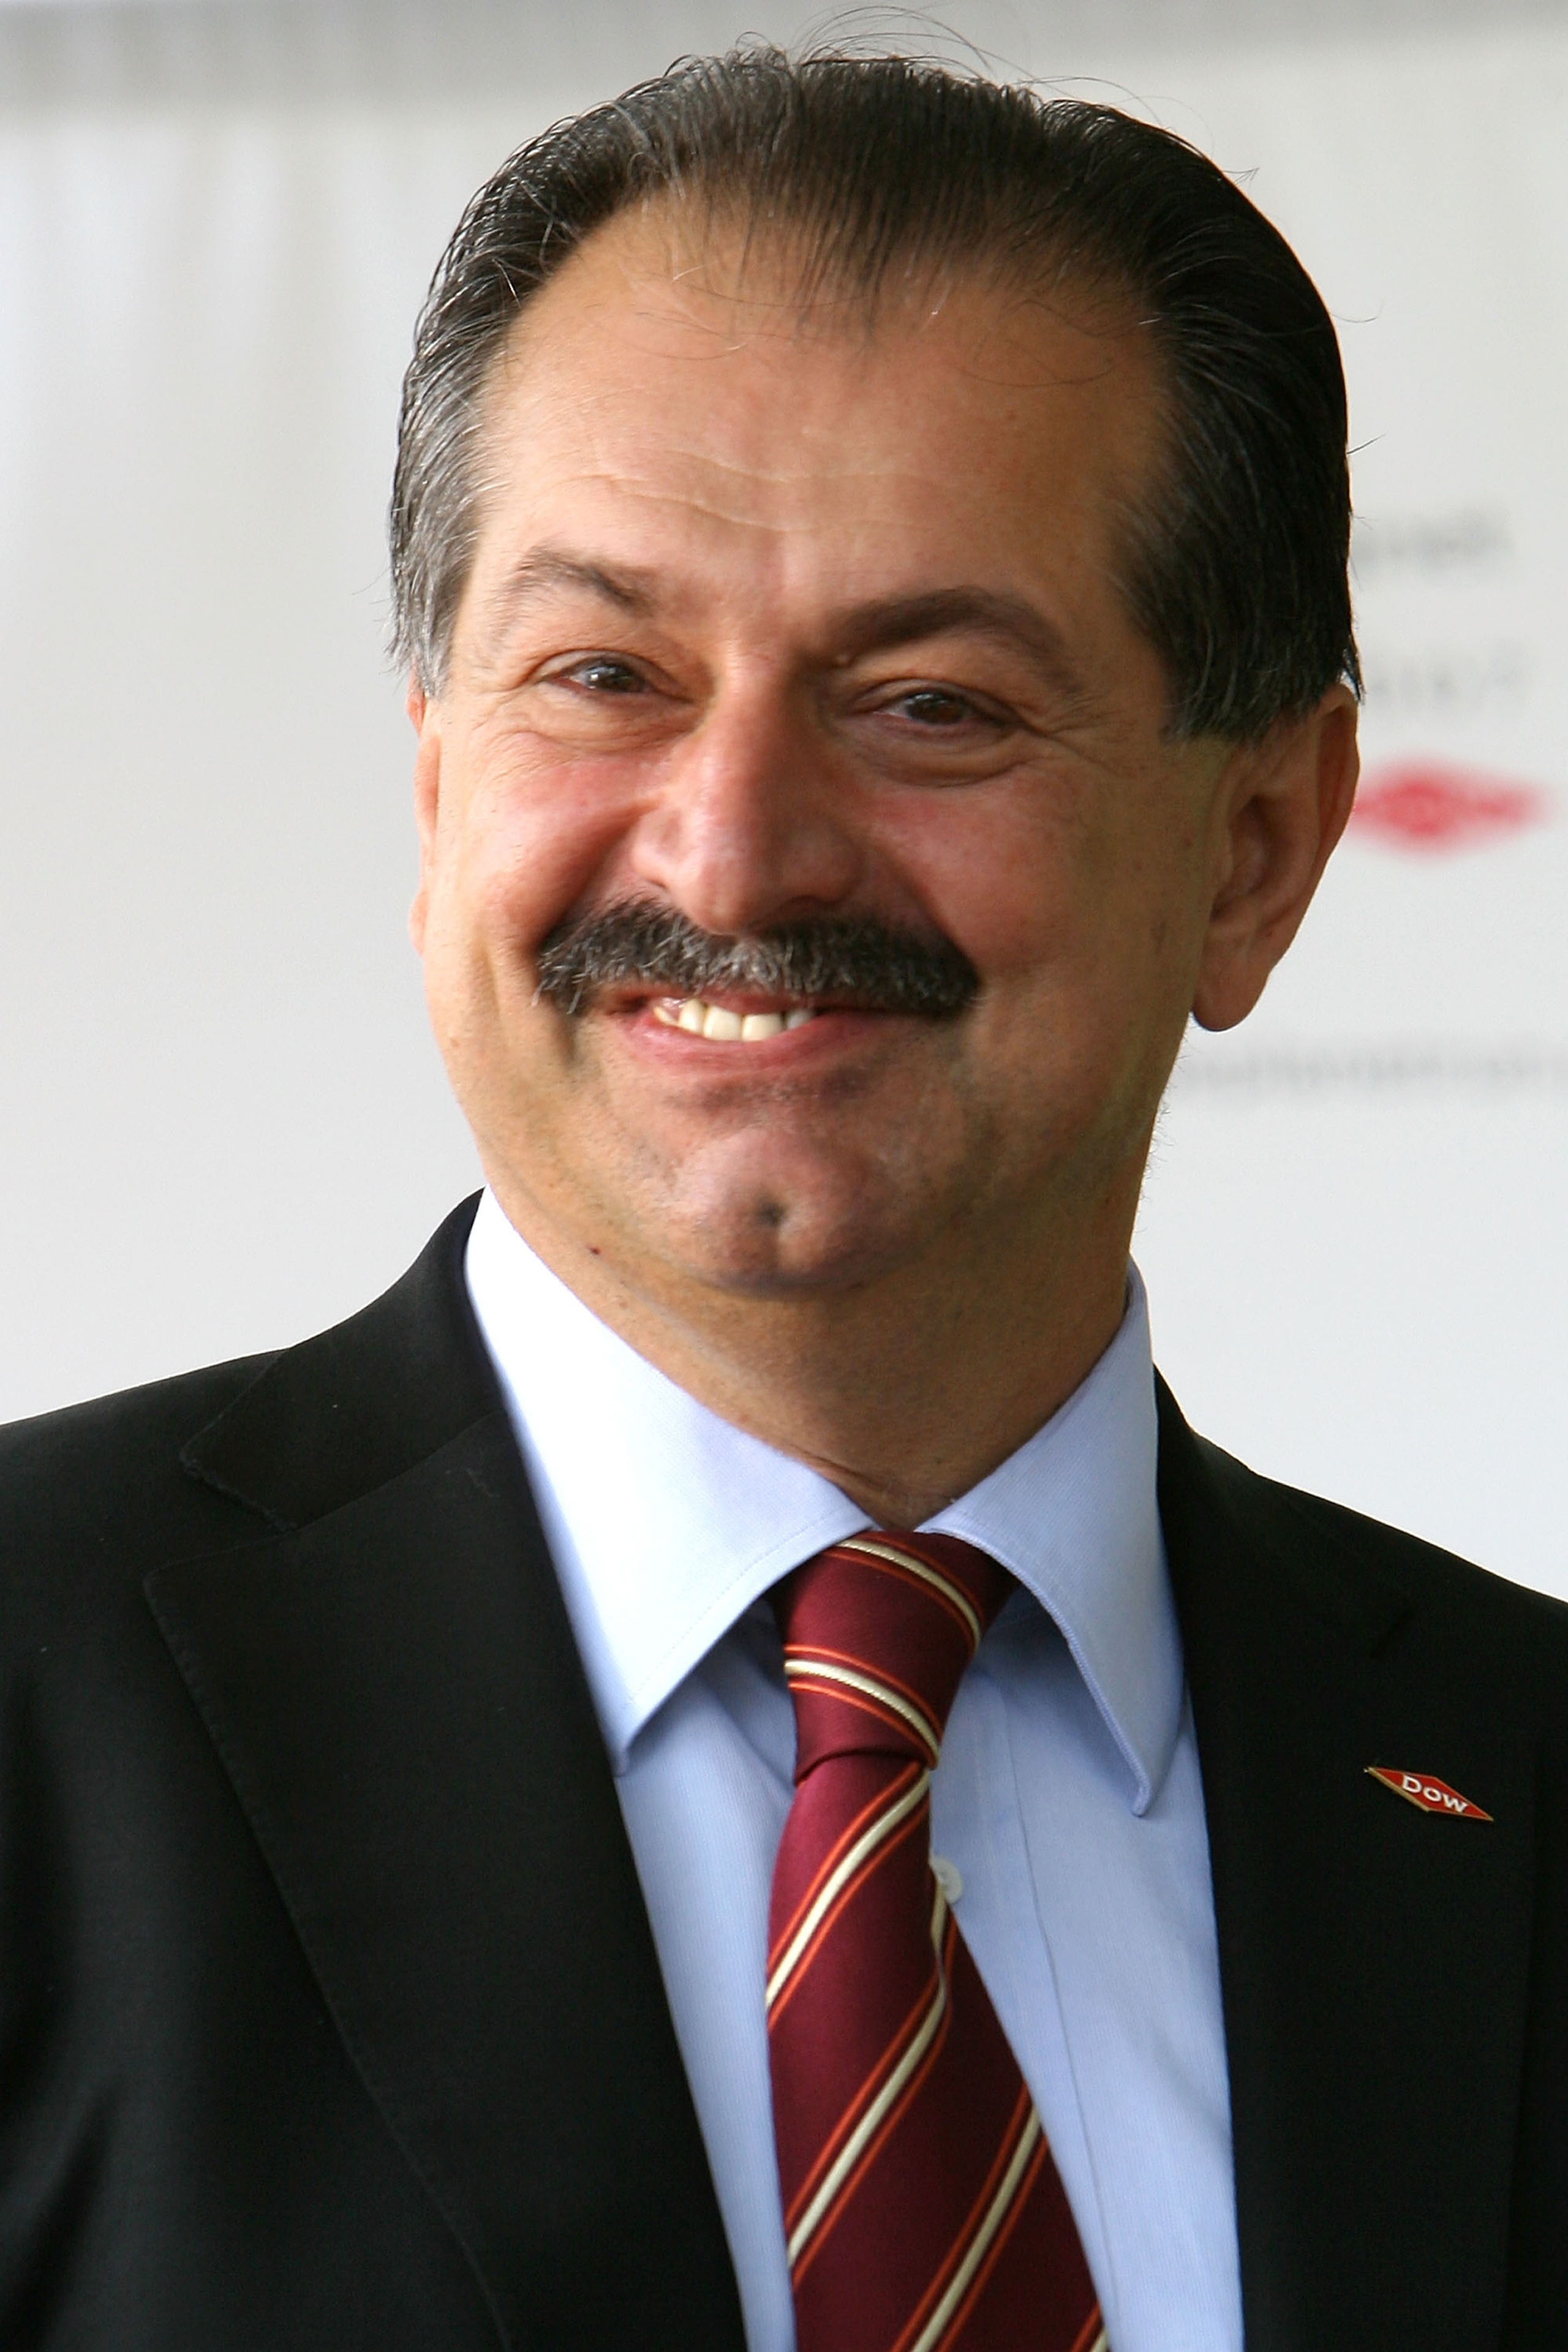 CEO of Dow Chemical Company Andrew Liveris attends the opening ceremonies for the 2007 Blue Planet Run at The United Nations on June 01, 2007 in New York City.